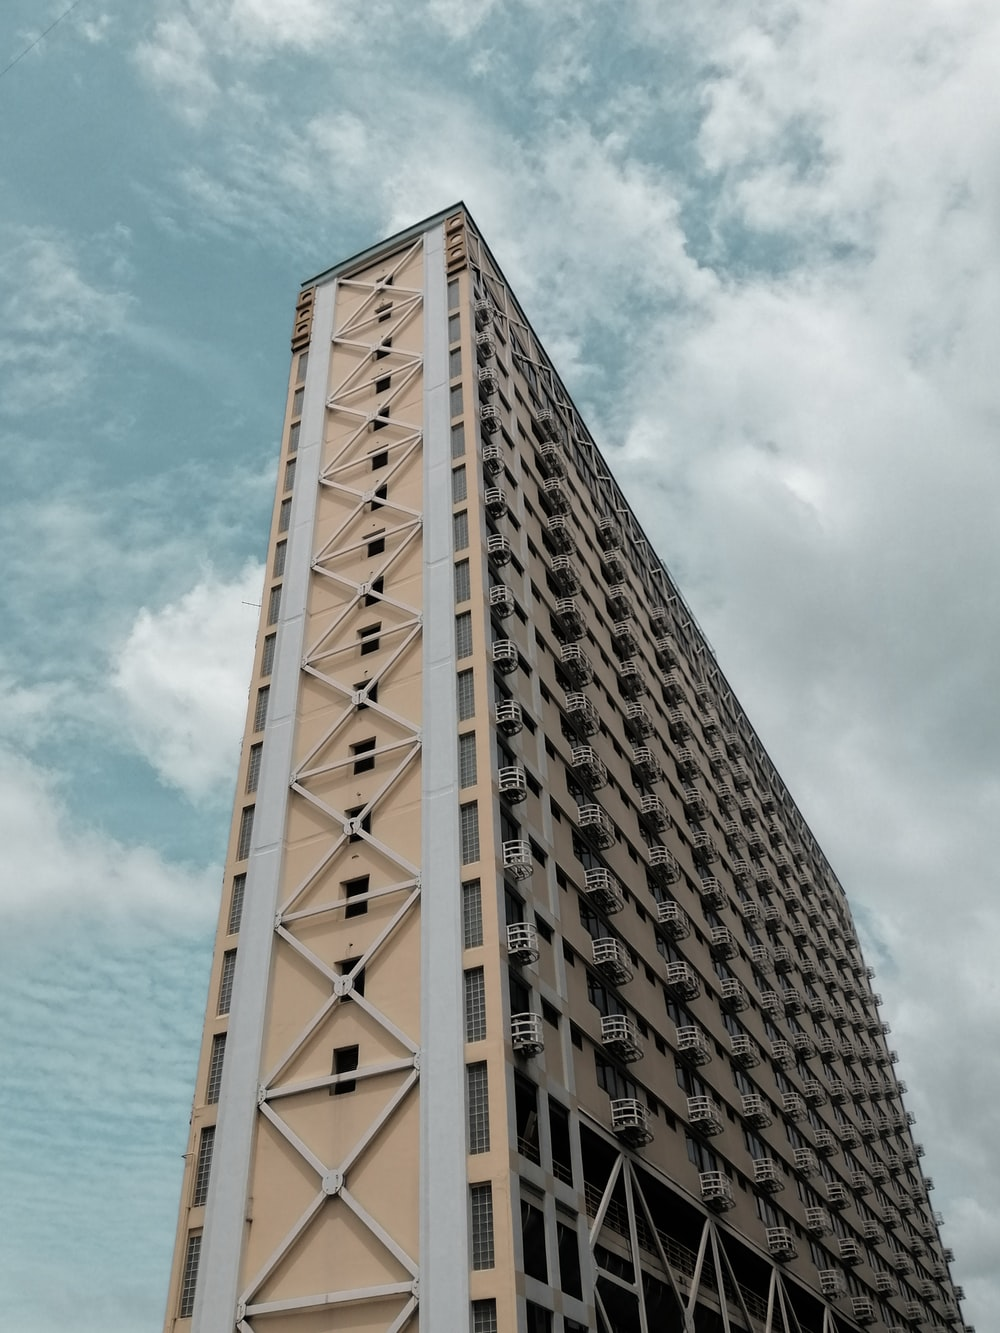 brown high-rise building under blue and white skies